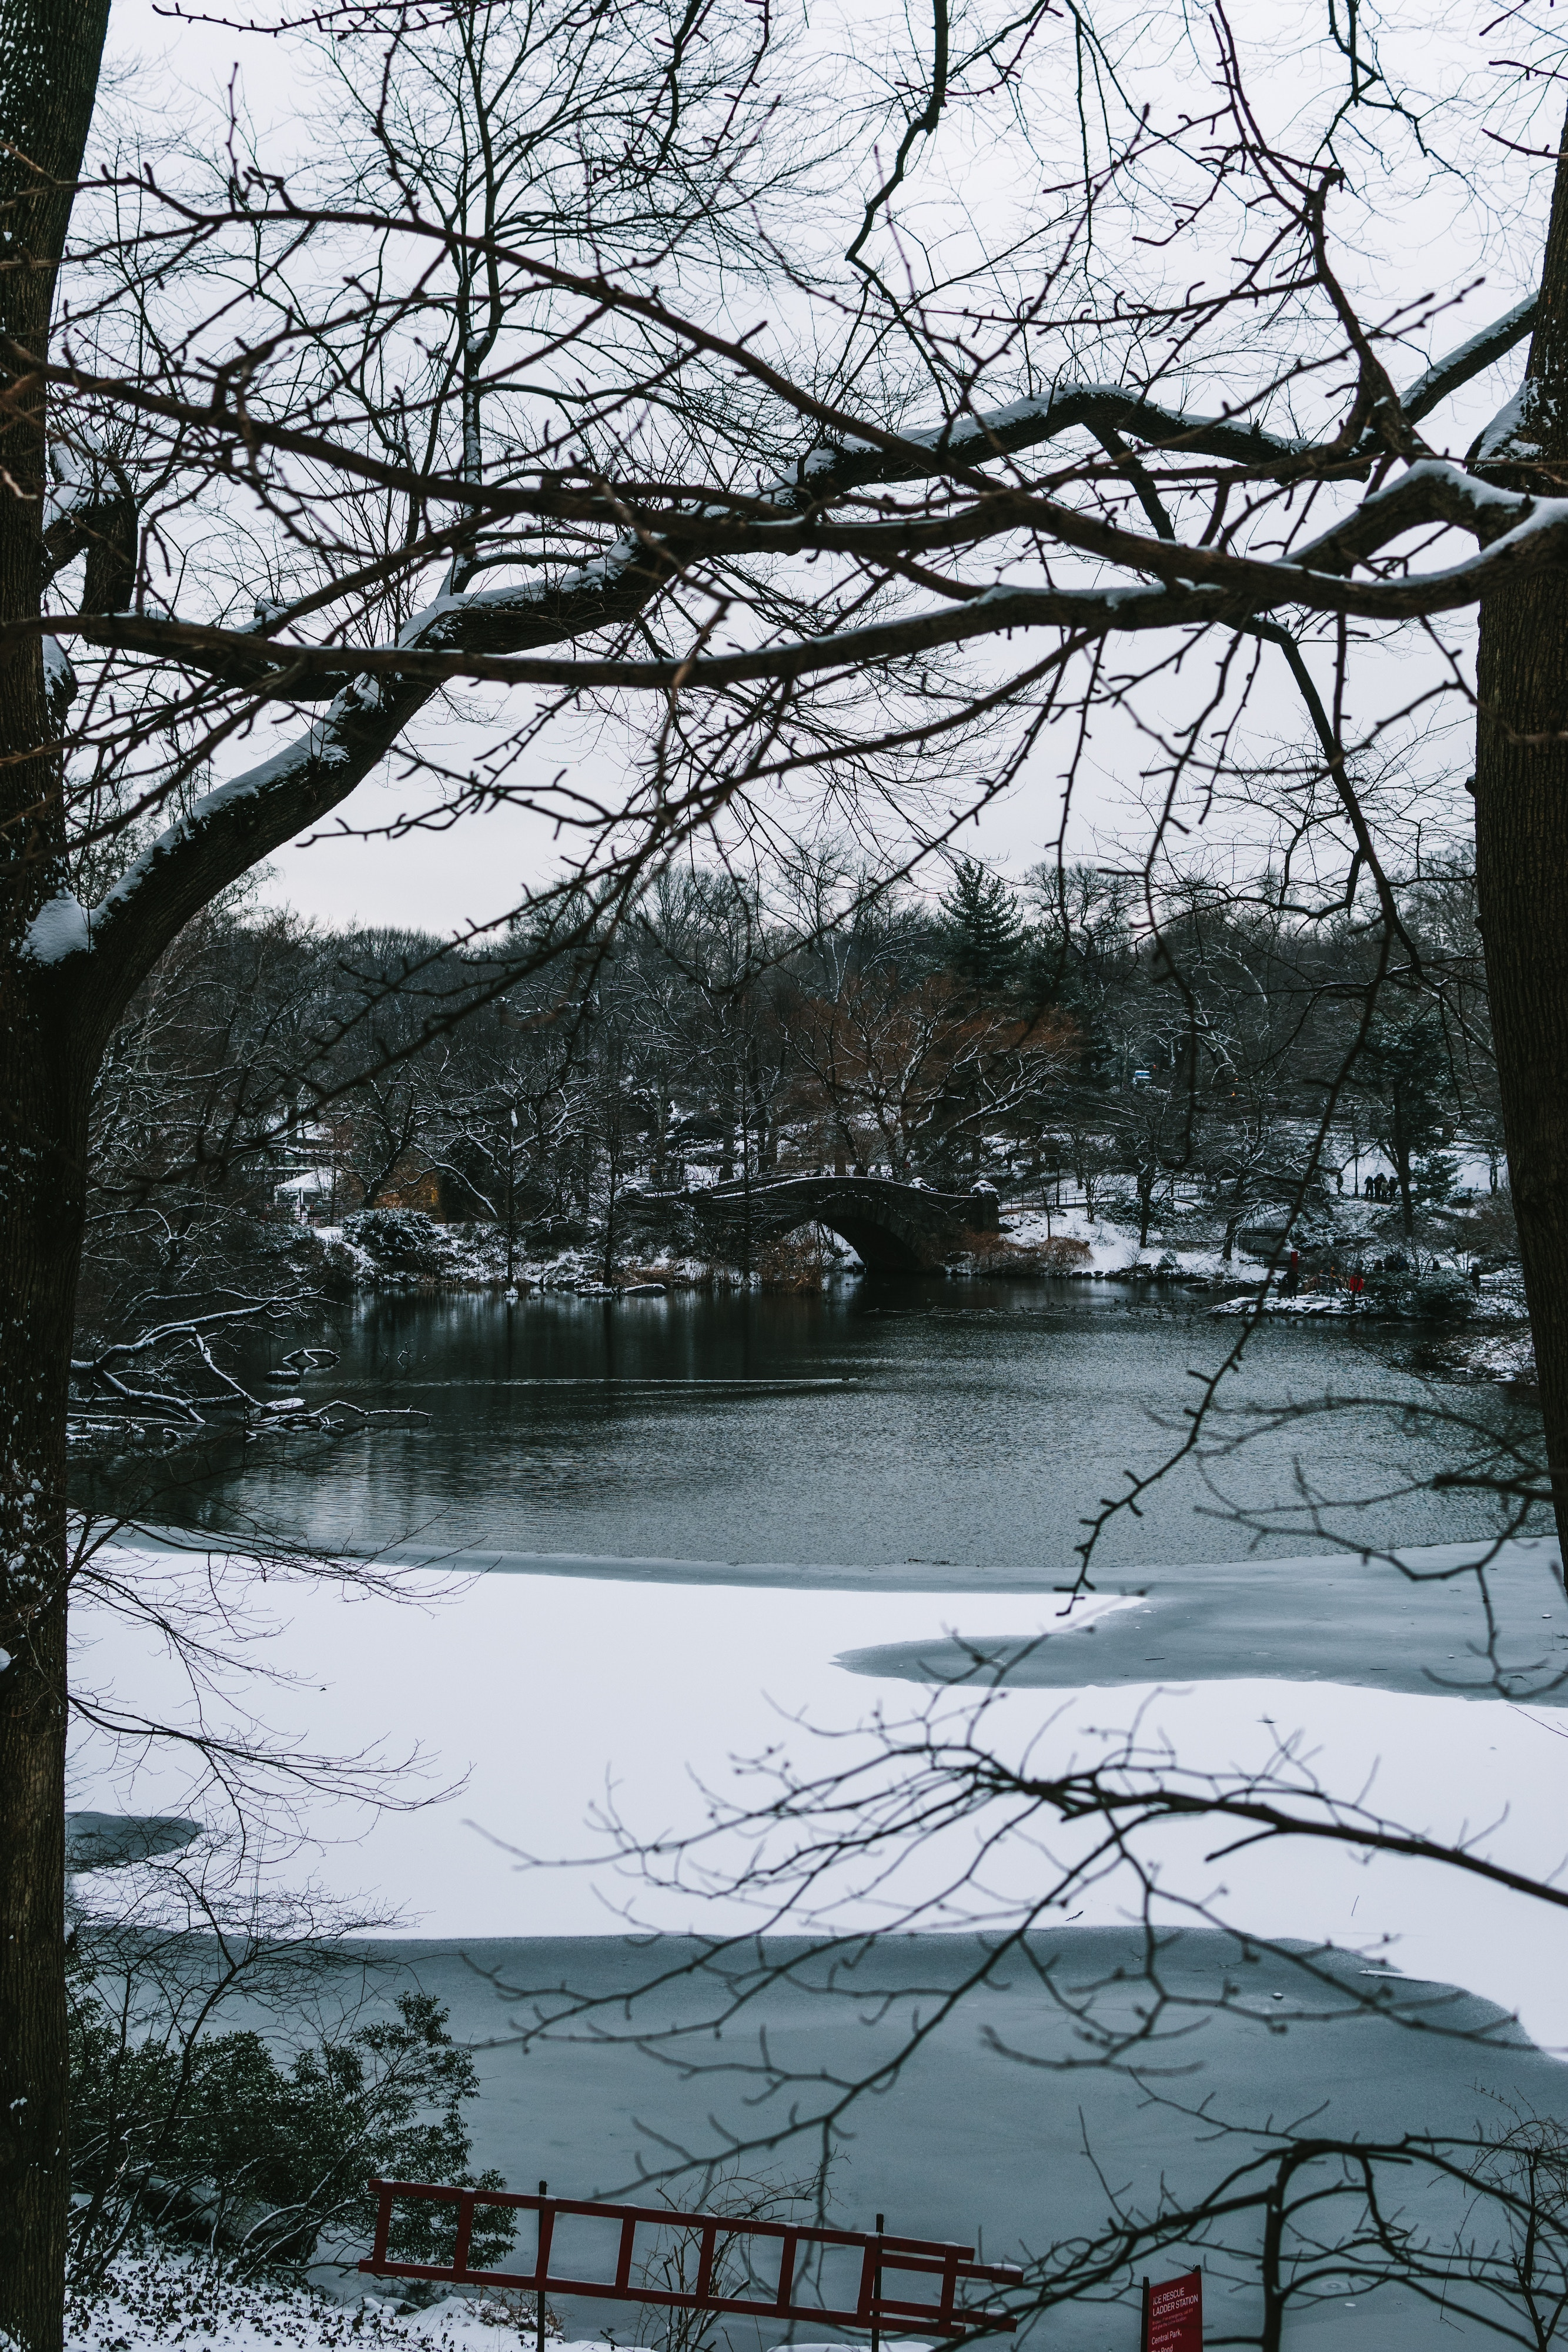 136717 download wallpaper Rivers, Trees, Bridge, Branches, Snow, Park, Cities screensavers and pictures for free